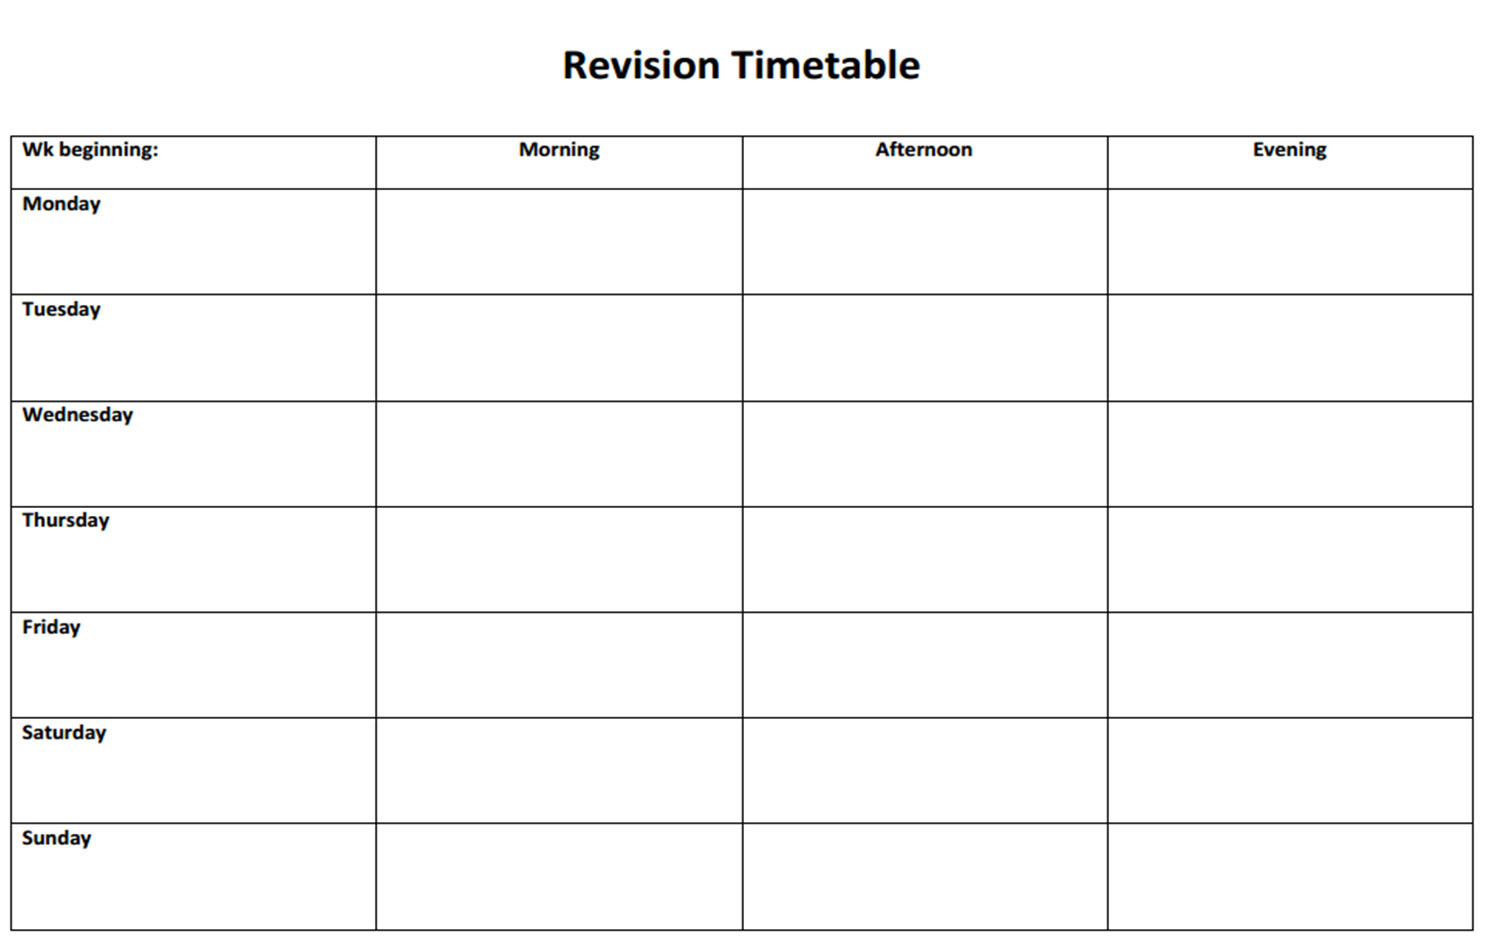 Revision Timetables